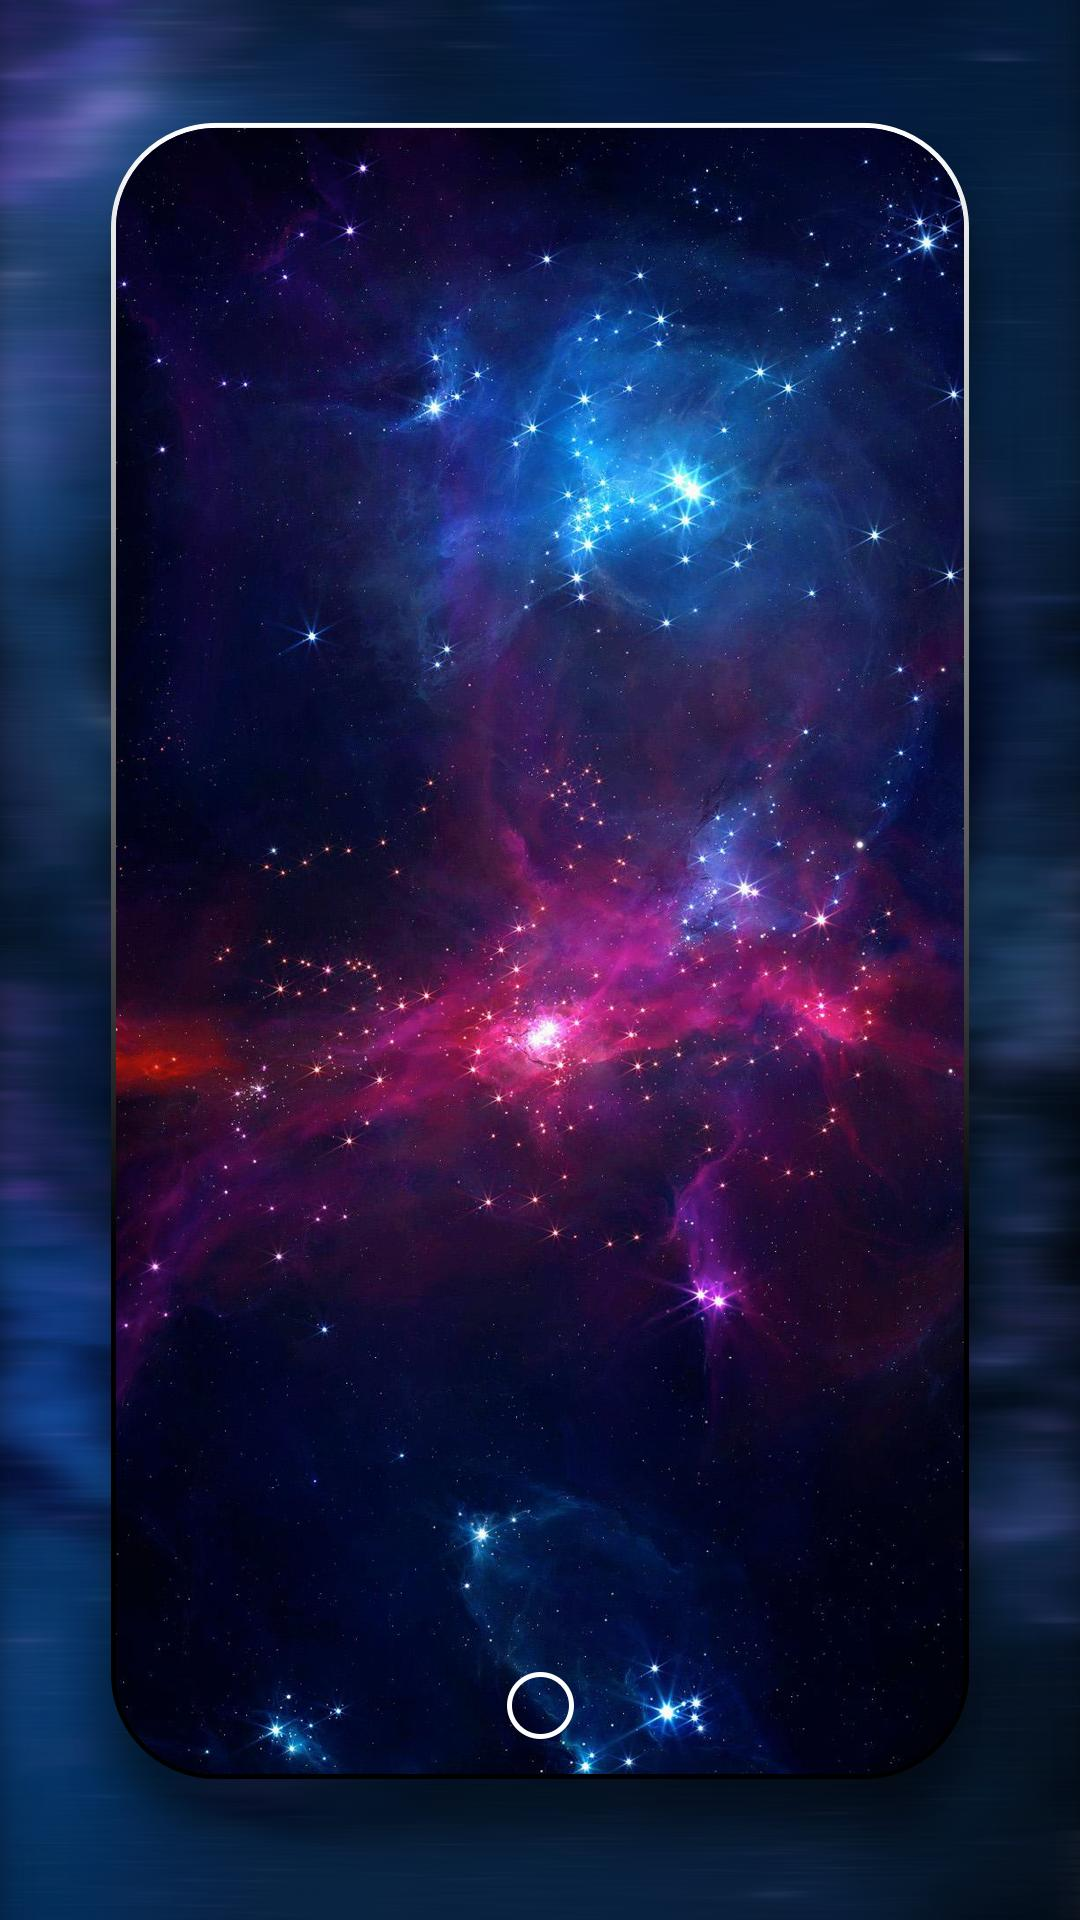 Galaxy Space Wallpapers For Android Apk Download